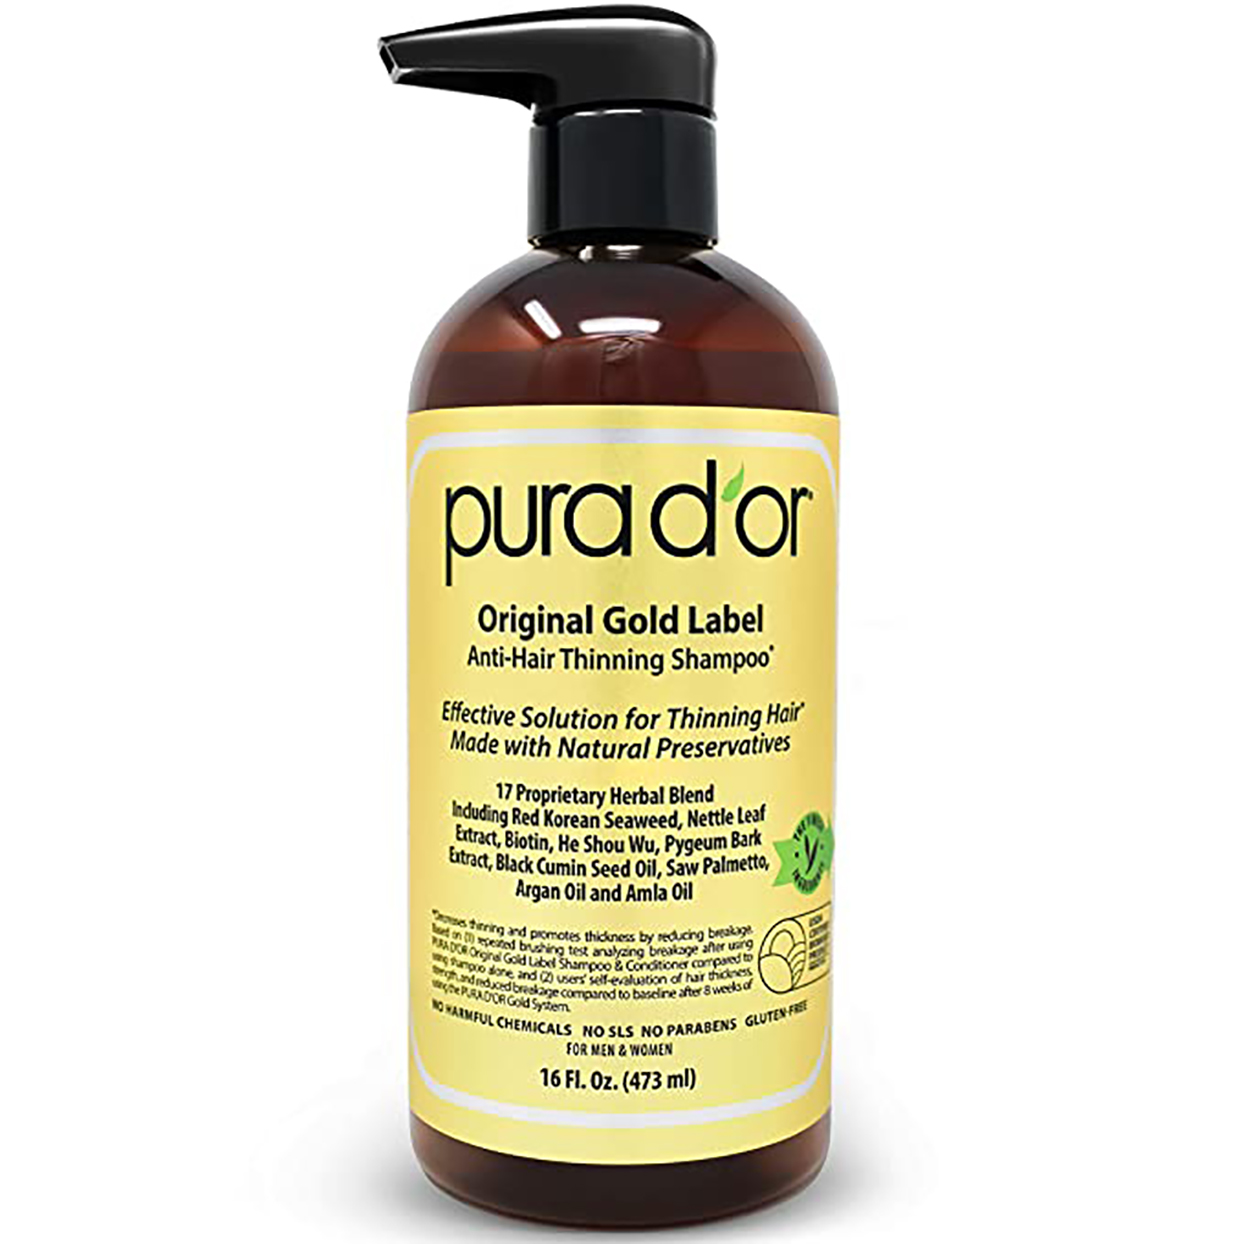 pur d or anti-thinning shampoo embed